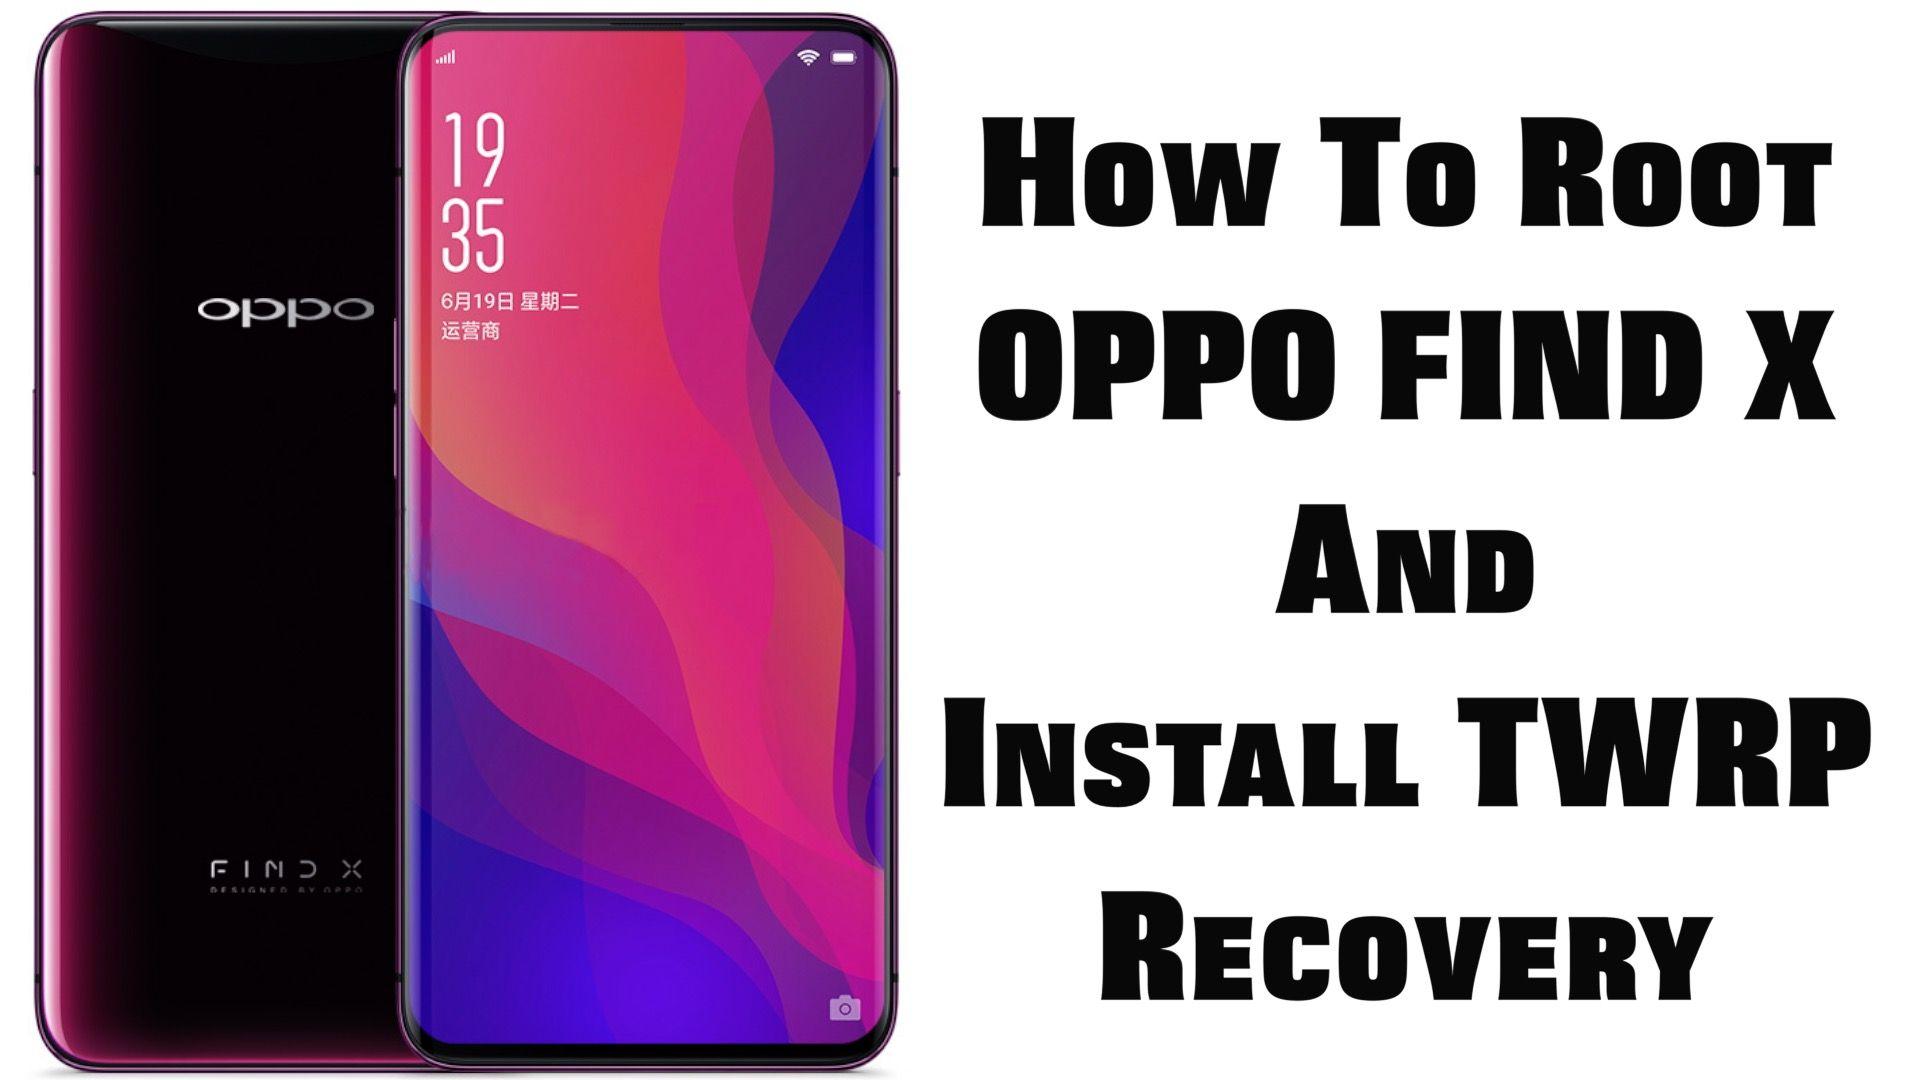 How To Root OPPO Find X Smartphone And Install TWRP Recovery #root